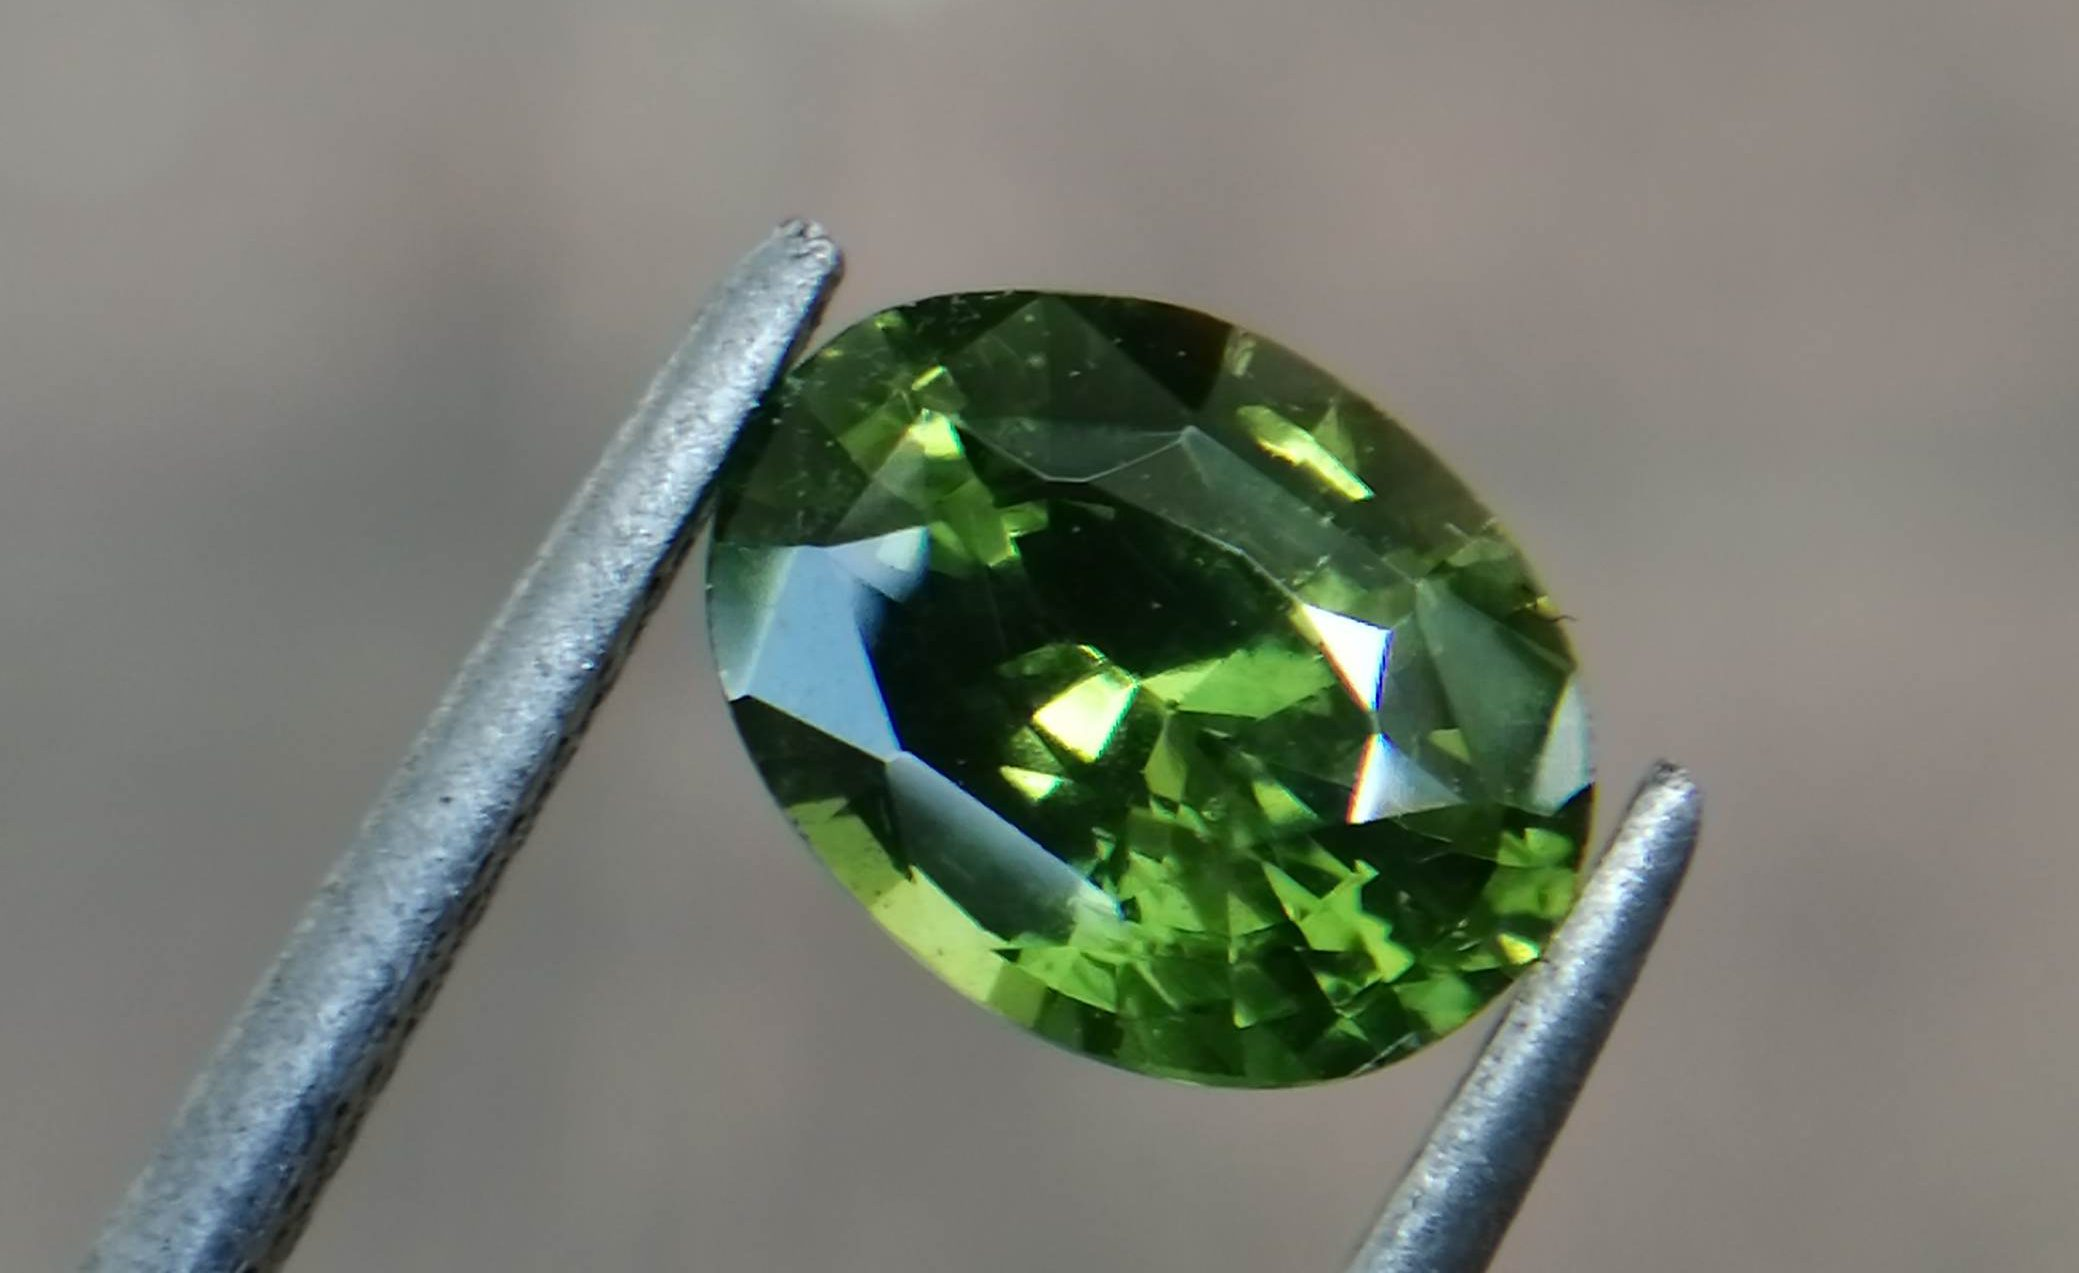 """Natural Green Zircon Sri Lanka - Beccarite Zircon Colour: Green Shape: Oval Weight : 1.85 Cts Dimension : 8.1 x 6.1 x 4.5 mm Treatment: Unheated Clarity : SI Origin : Sri Lanka Zircon is a nesosilicates group mineral. Its corresponding chemical formula is ZrSiO4. The name derives from the Persian zargun, meaning """"gold-hued"""". Zircon is a popular gemstone that has been used for nearly 2000 years. The crystal structure of zircon is a tetragonal crystal mineral with 7.5 hardness according to the Mohs Hardness scale. Zircon is also very resistant to heat and corrosion and known as Insoluble gemstone. This Uniaxial (+) mineral Specific gravity is 4.6–4.7. It's heavy more than such as Sapphire, chrysoberyl, Garnets, spinels. Gem Businessmen use these physical properties to identify zircons from other gemstones. Zircon has weak pleochroism and has colors such as Colorless, Very Strong Blue To Green-Blue, Yellow, Blue-Green, Yellowish Green, Yellow-Green, Brown, Orangy Yellow To Reddish Orange, Dark Brownish Red, Sometimes Purple, Gray To Bluish Gray, Brownish Gray. Colorless specimens that show gem quality are a popular substitute for diamond and are also known as """"Matara diamond"""". Zircon has been classified into three types called high zircon, intermediate zircon ( medium zircon ), and low zircon. Some Quality Type brown zircons can be transformed into colorless and blue zircons by heating to 800 to 1000 °C. There are Some using names for Zircon such as Hyacinth or jacinth: yellow-red, orange, red-brown to brown, Jargoon or jargon: light yellow to colorless stones, Beccarite: green zircon, Melichrysos: straw yellow, Starlite: blue heat treated zircon, Sparklite: colorless zircon. Zircon is found in Madagascar, Sri Lanka, Tanzania, Cambodia, Australia, Burma, Afghanistan, Canada, USA, Thailand, Russia, Mozambique, Norway. Healing Properties 👇 Zircon is known as """"The stone of virtue"""" All colors. It clears the auric negativity in the wearer and helps to communicate with the h"""